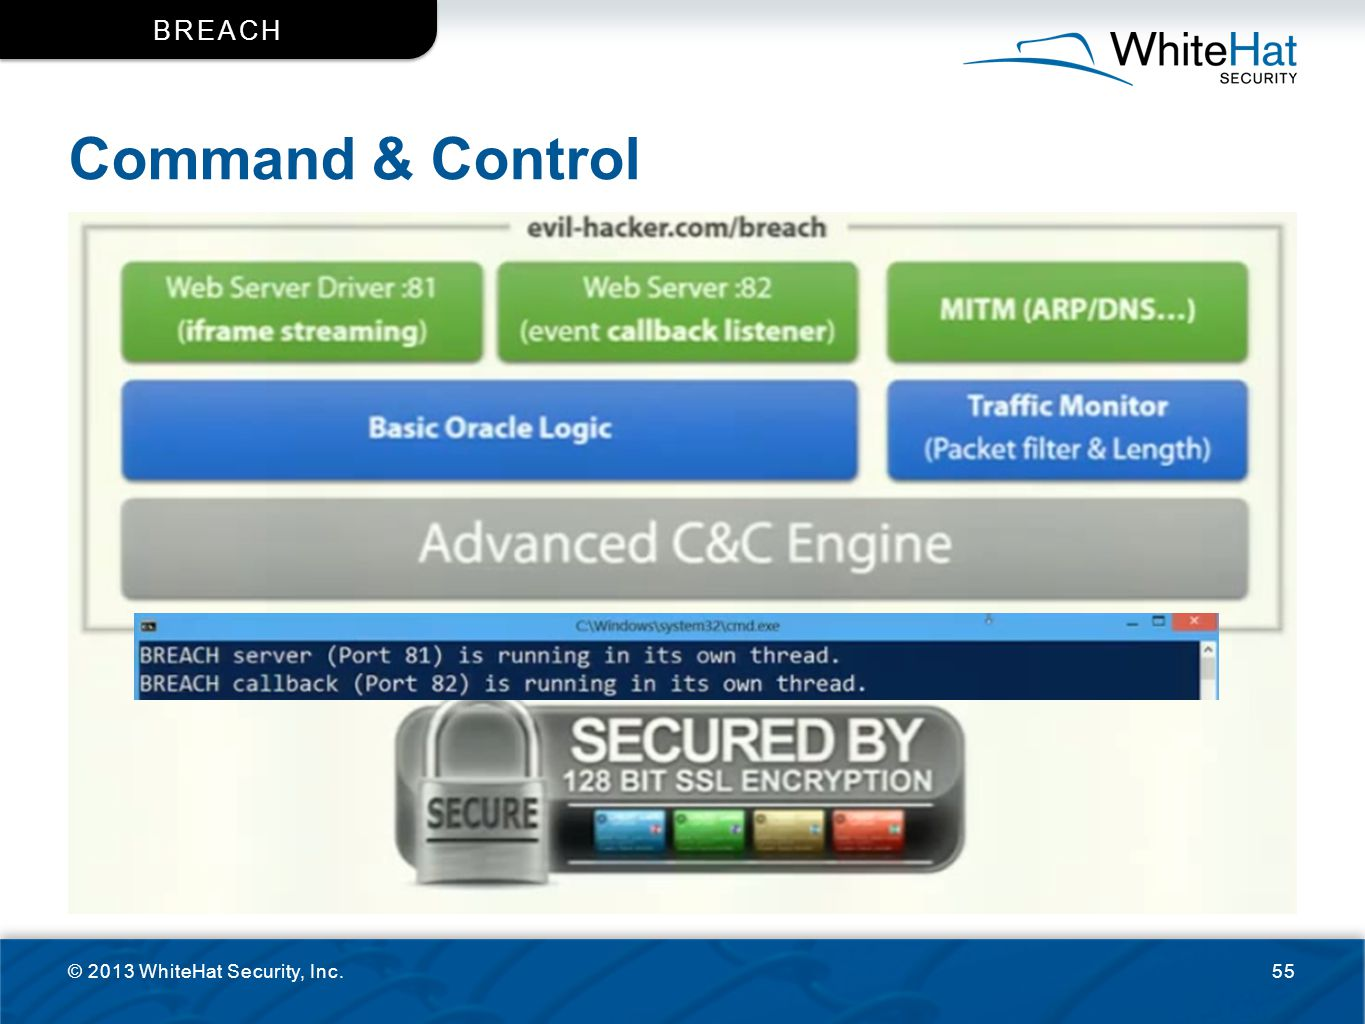 BReACH Command & Control © 2013 WhiteHat Security, Inc.